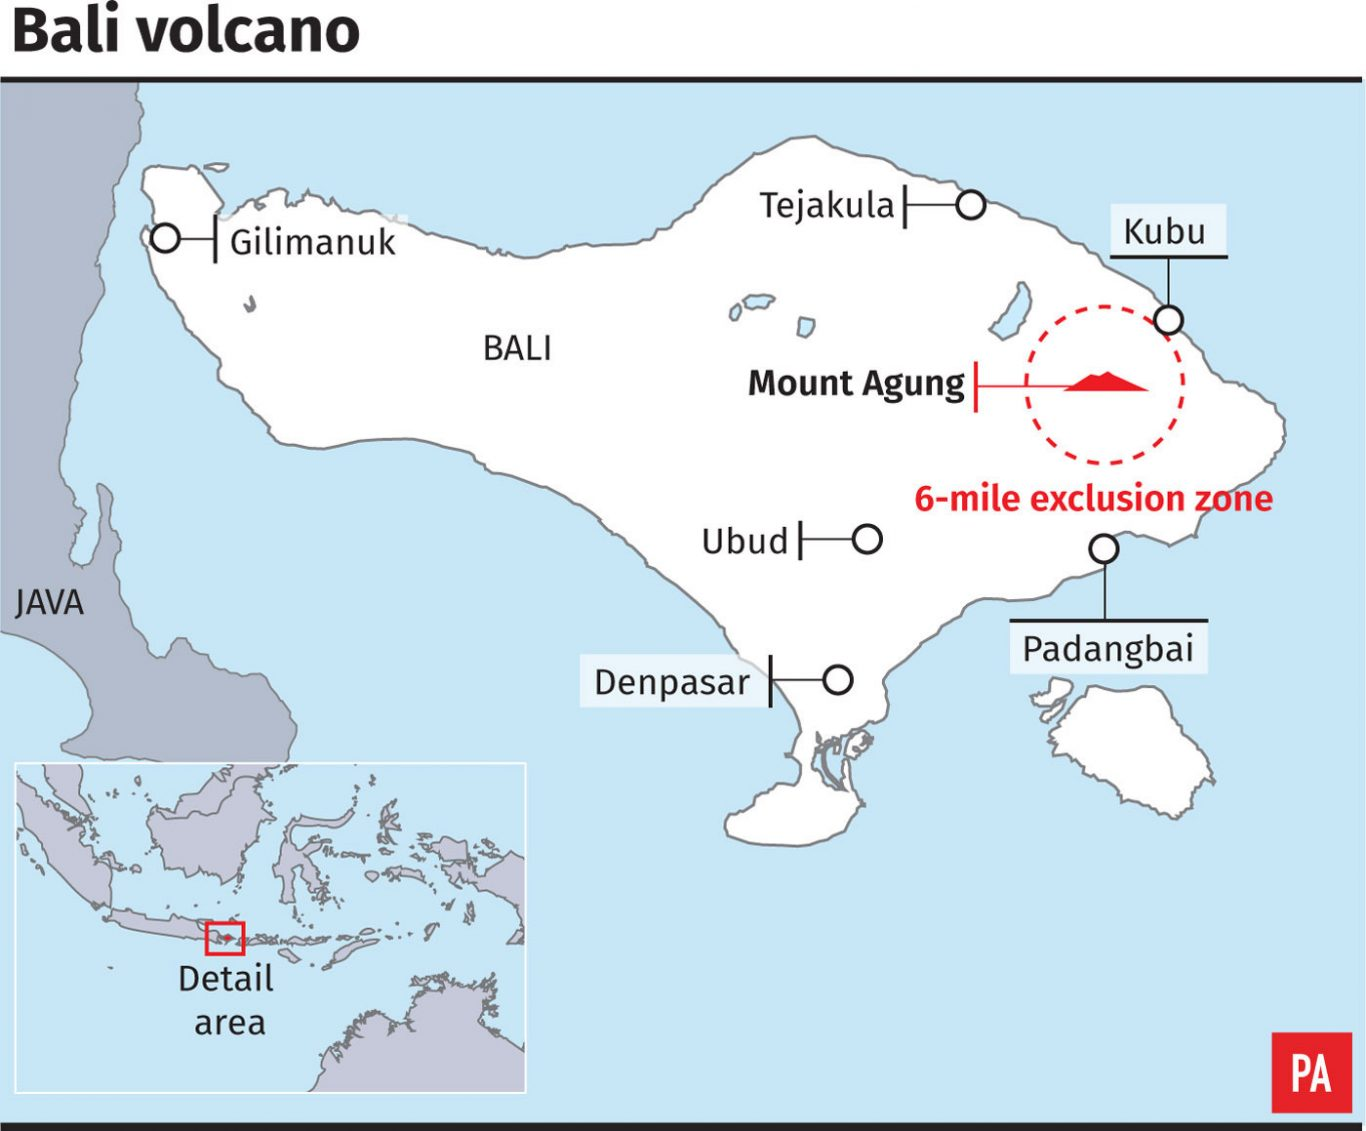 Erupting volcano shuts Bali airport for 2nd day